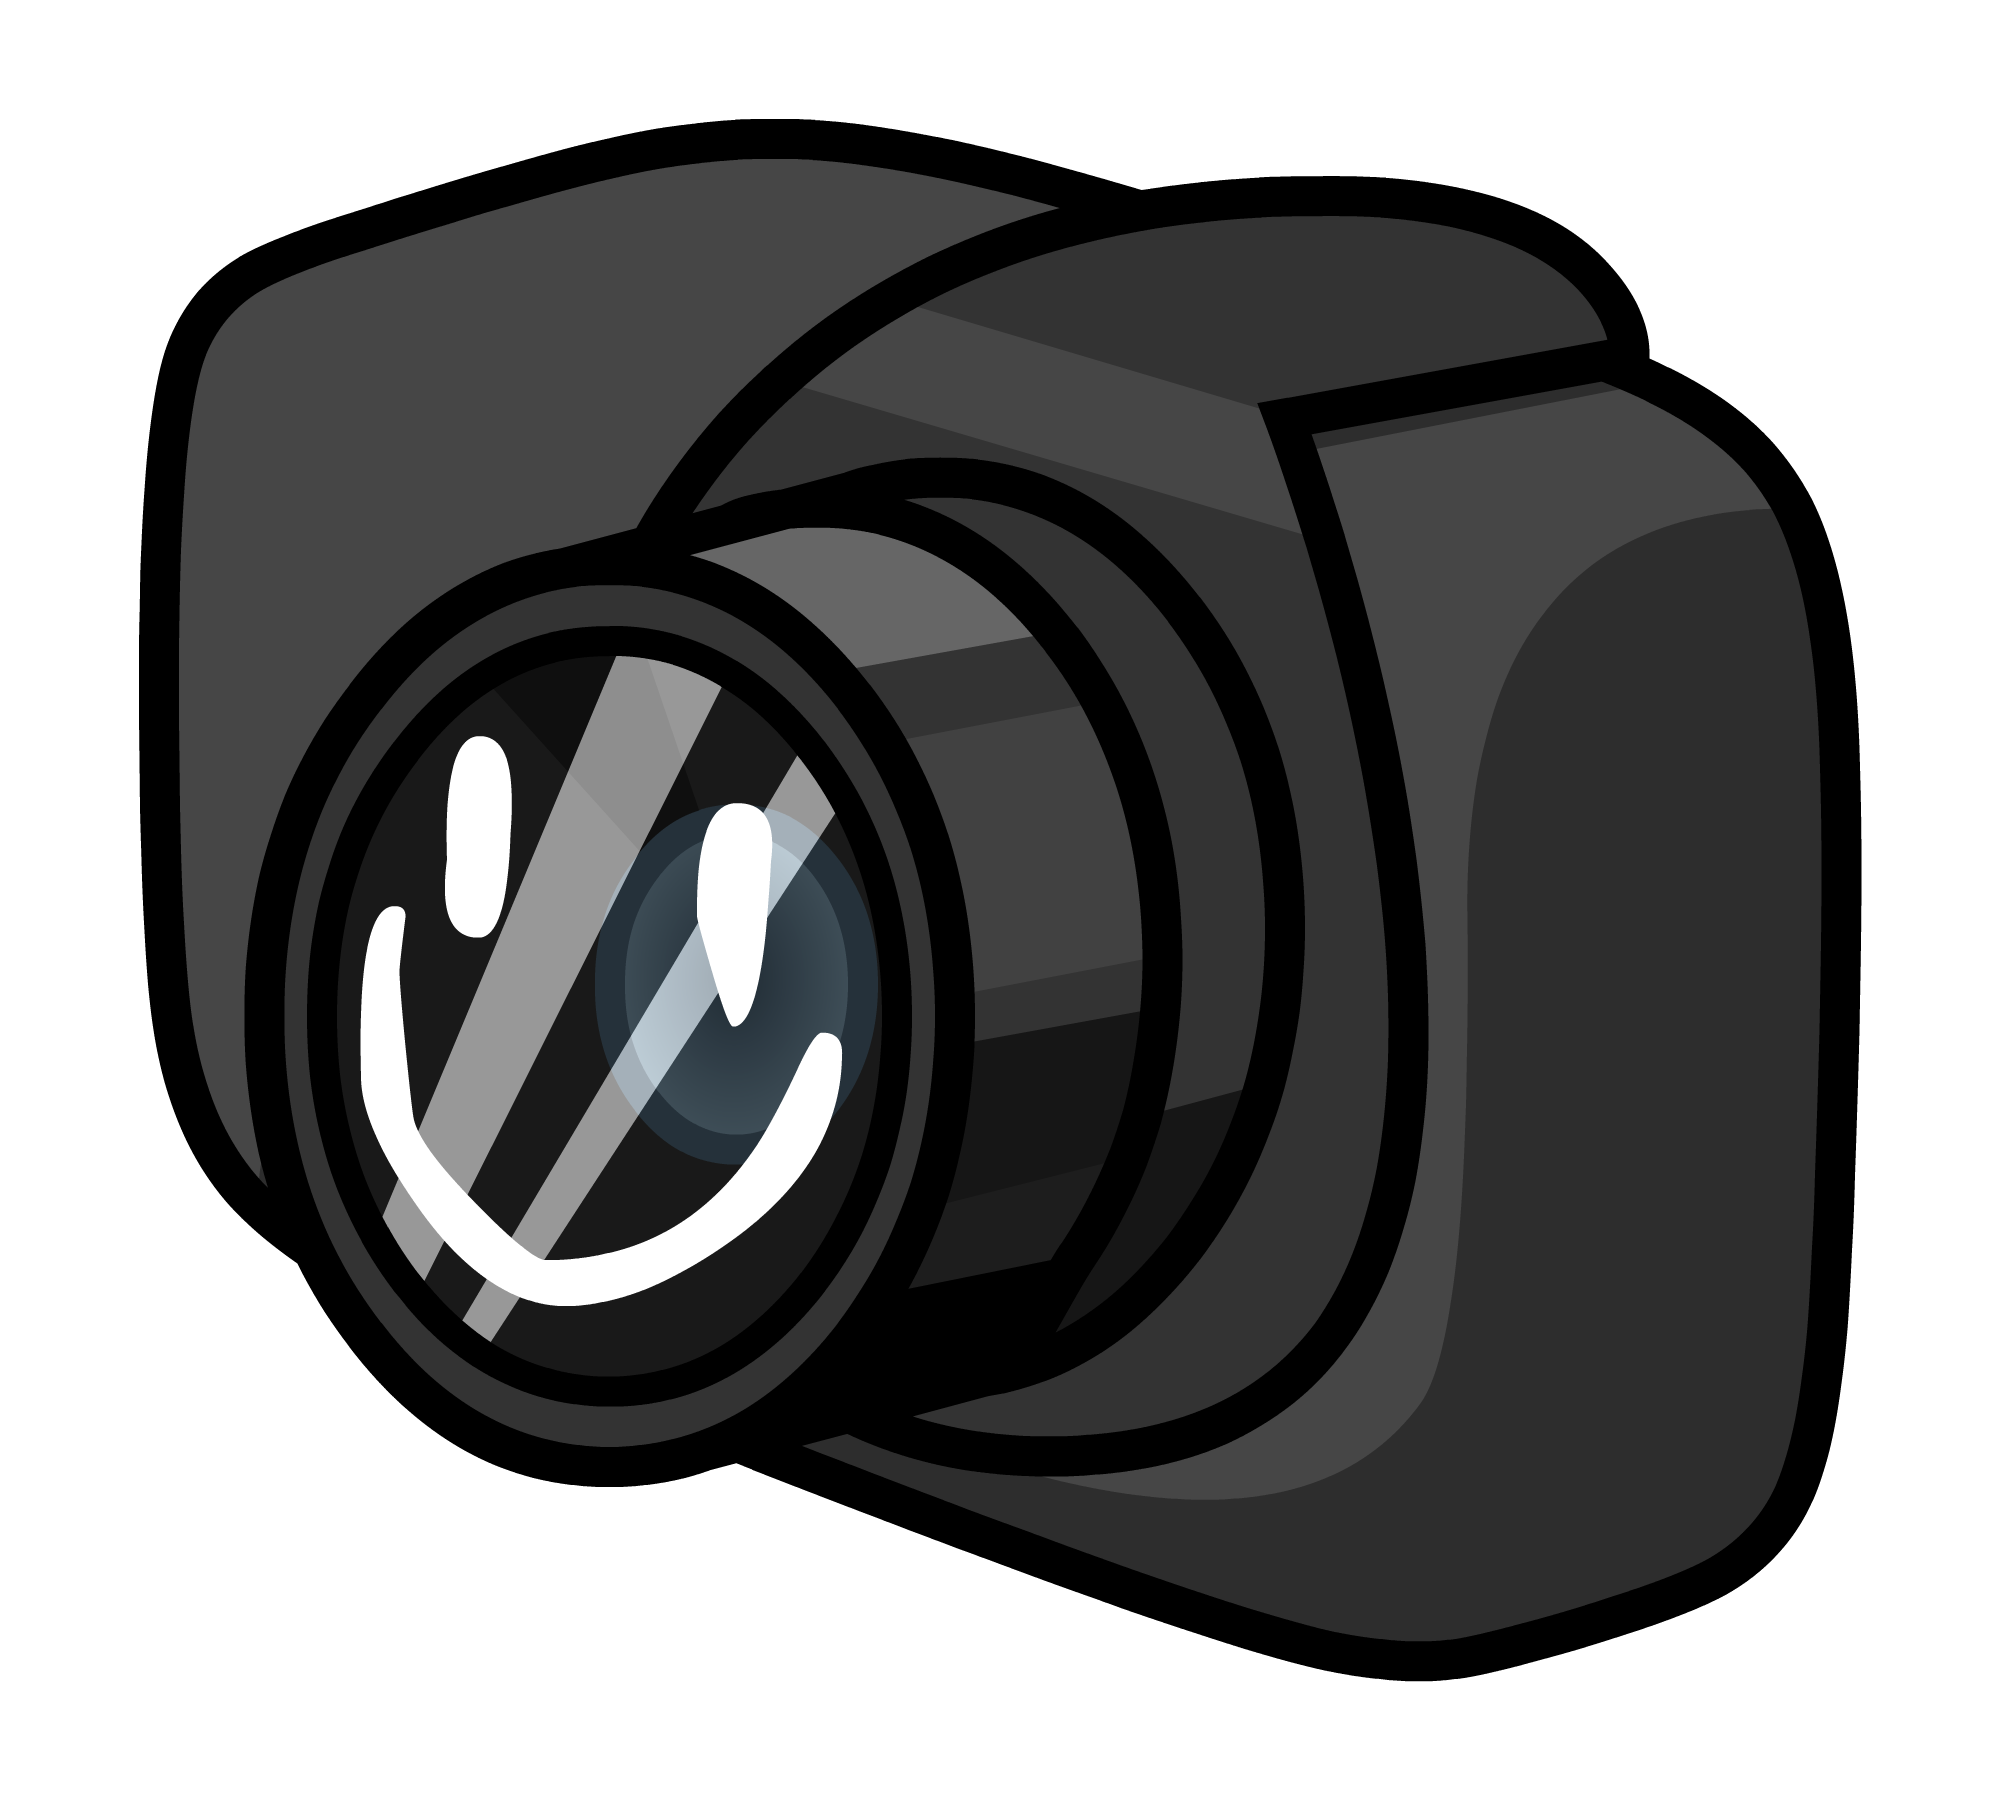 Video clips png. Image freesmart diary camera